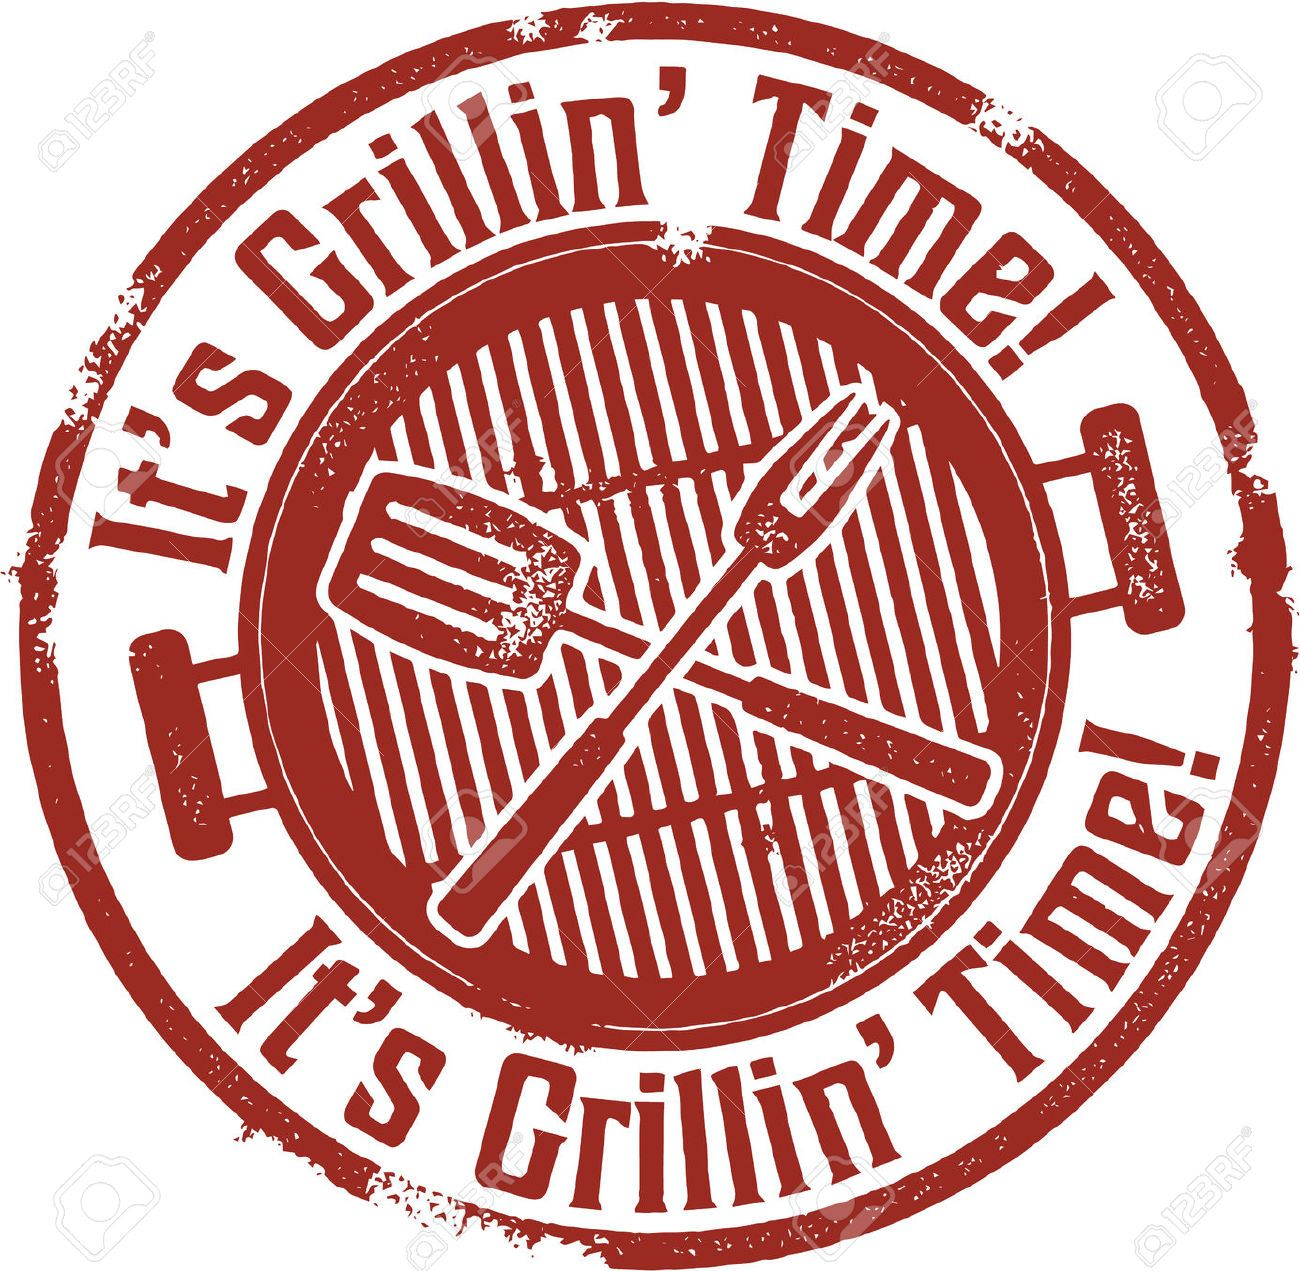 hight resolution of it s grilling bbq time royalty free cliparts vectors and stock illustration pic 27874236